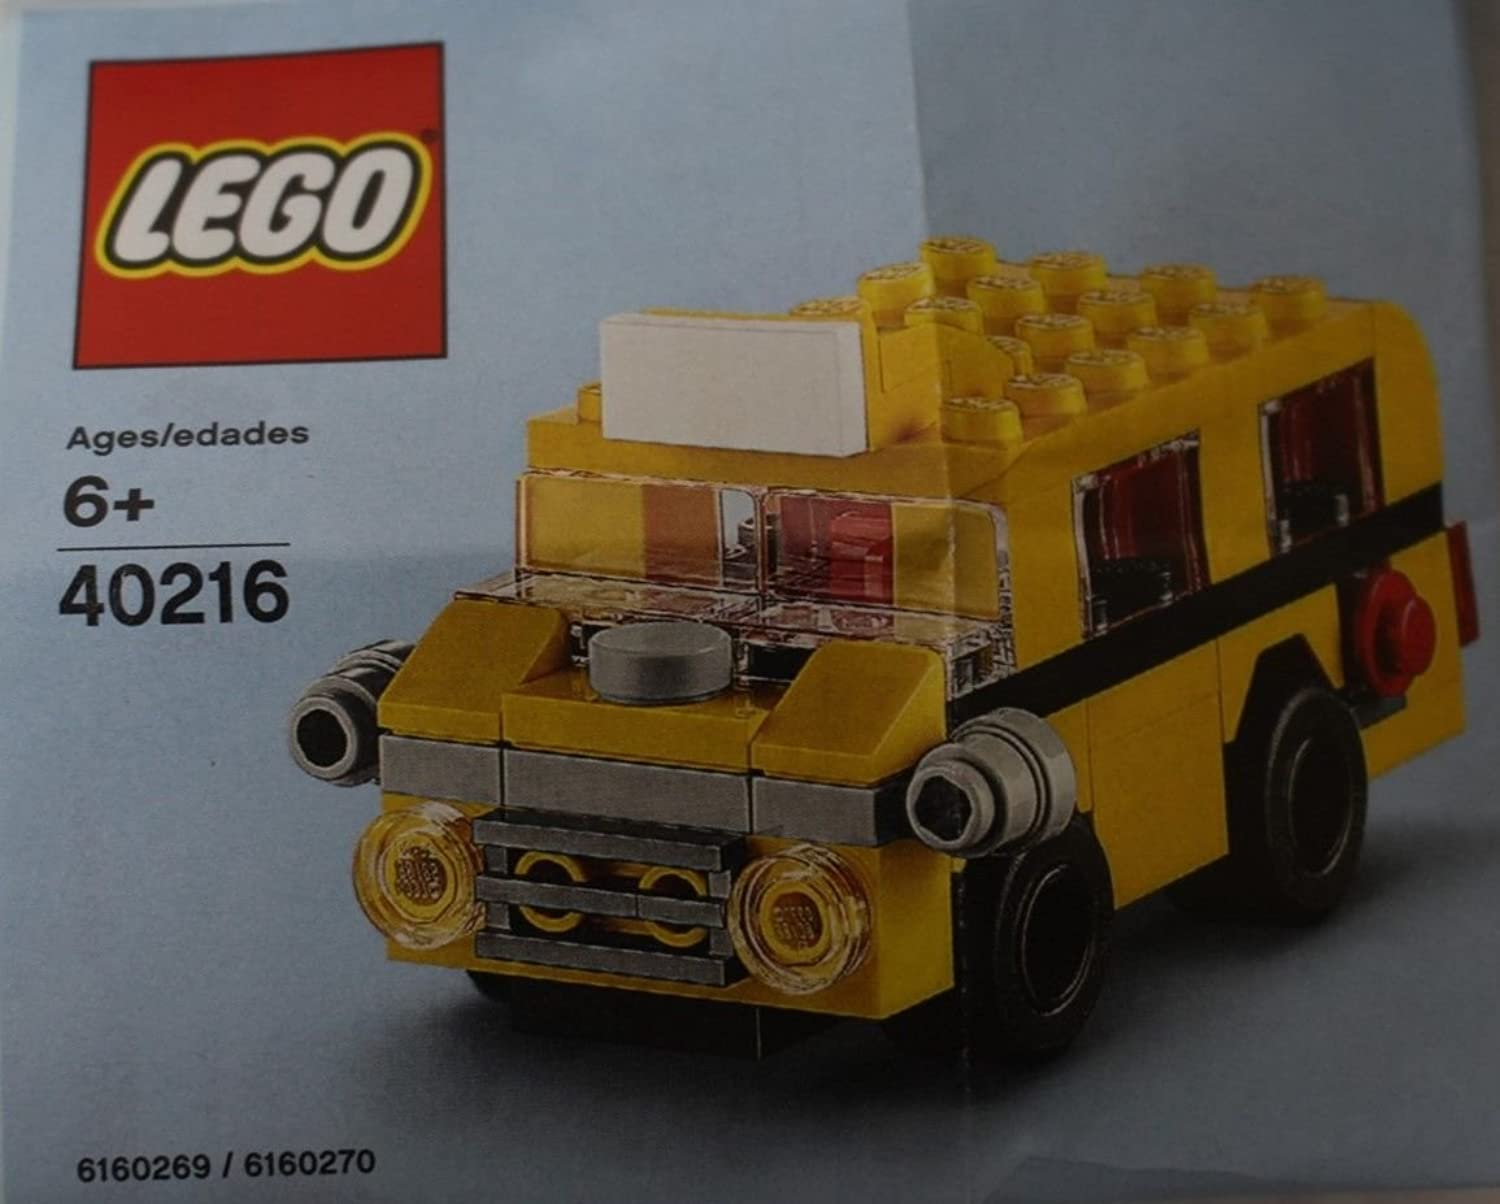 LEGO 40216 Sept 2016 School Bus Monthly Mini Build Polybag 65pcs by LEGO